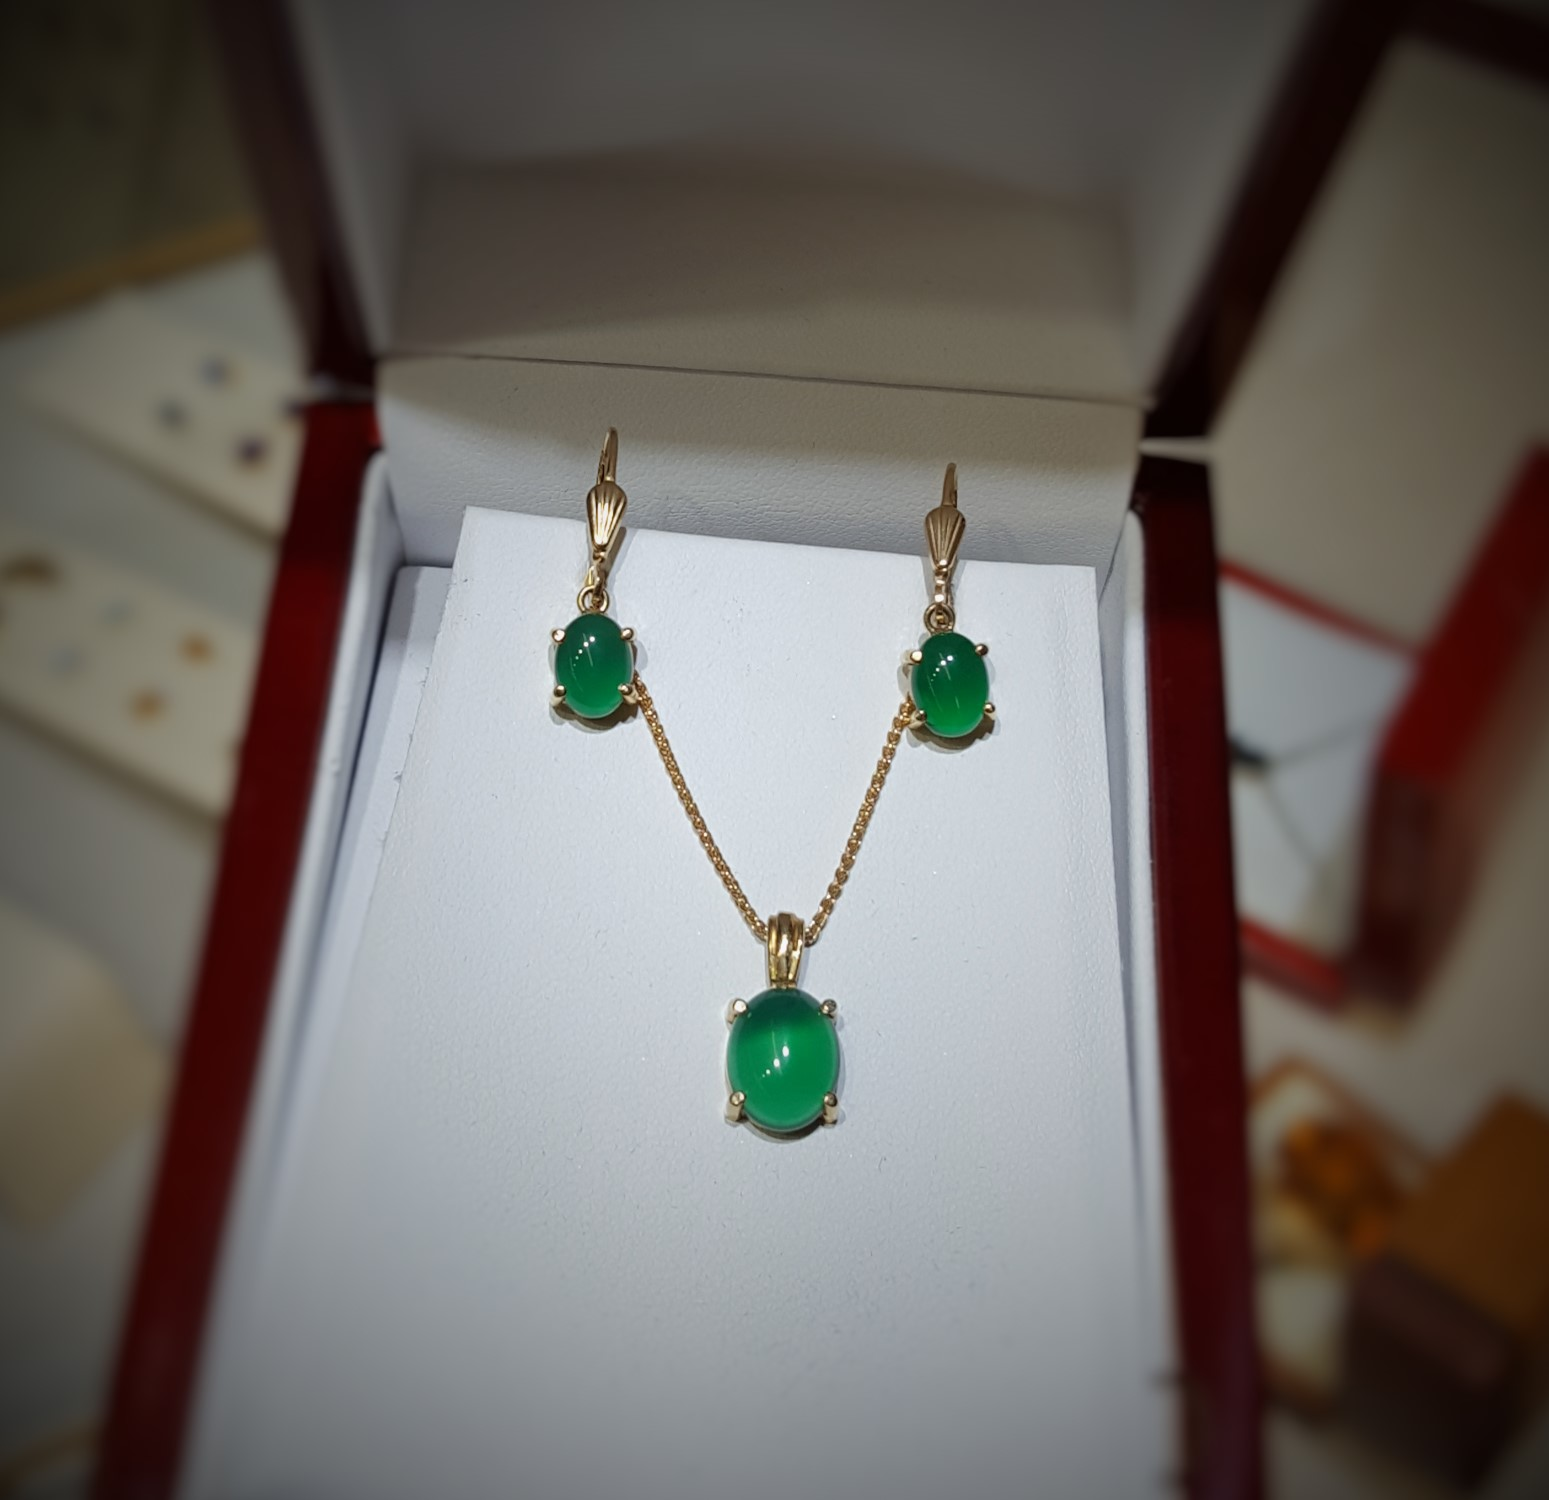 Chrysoprase Pendant & Earrings Set